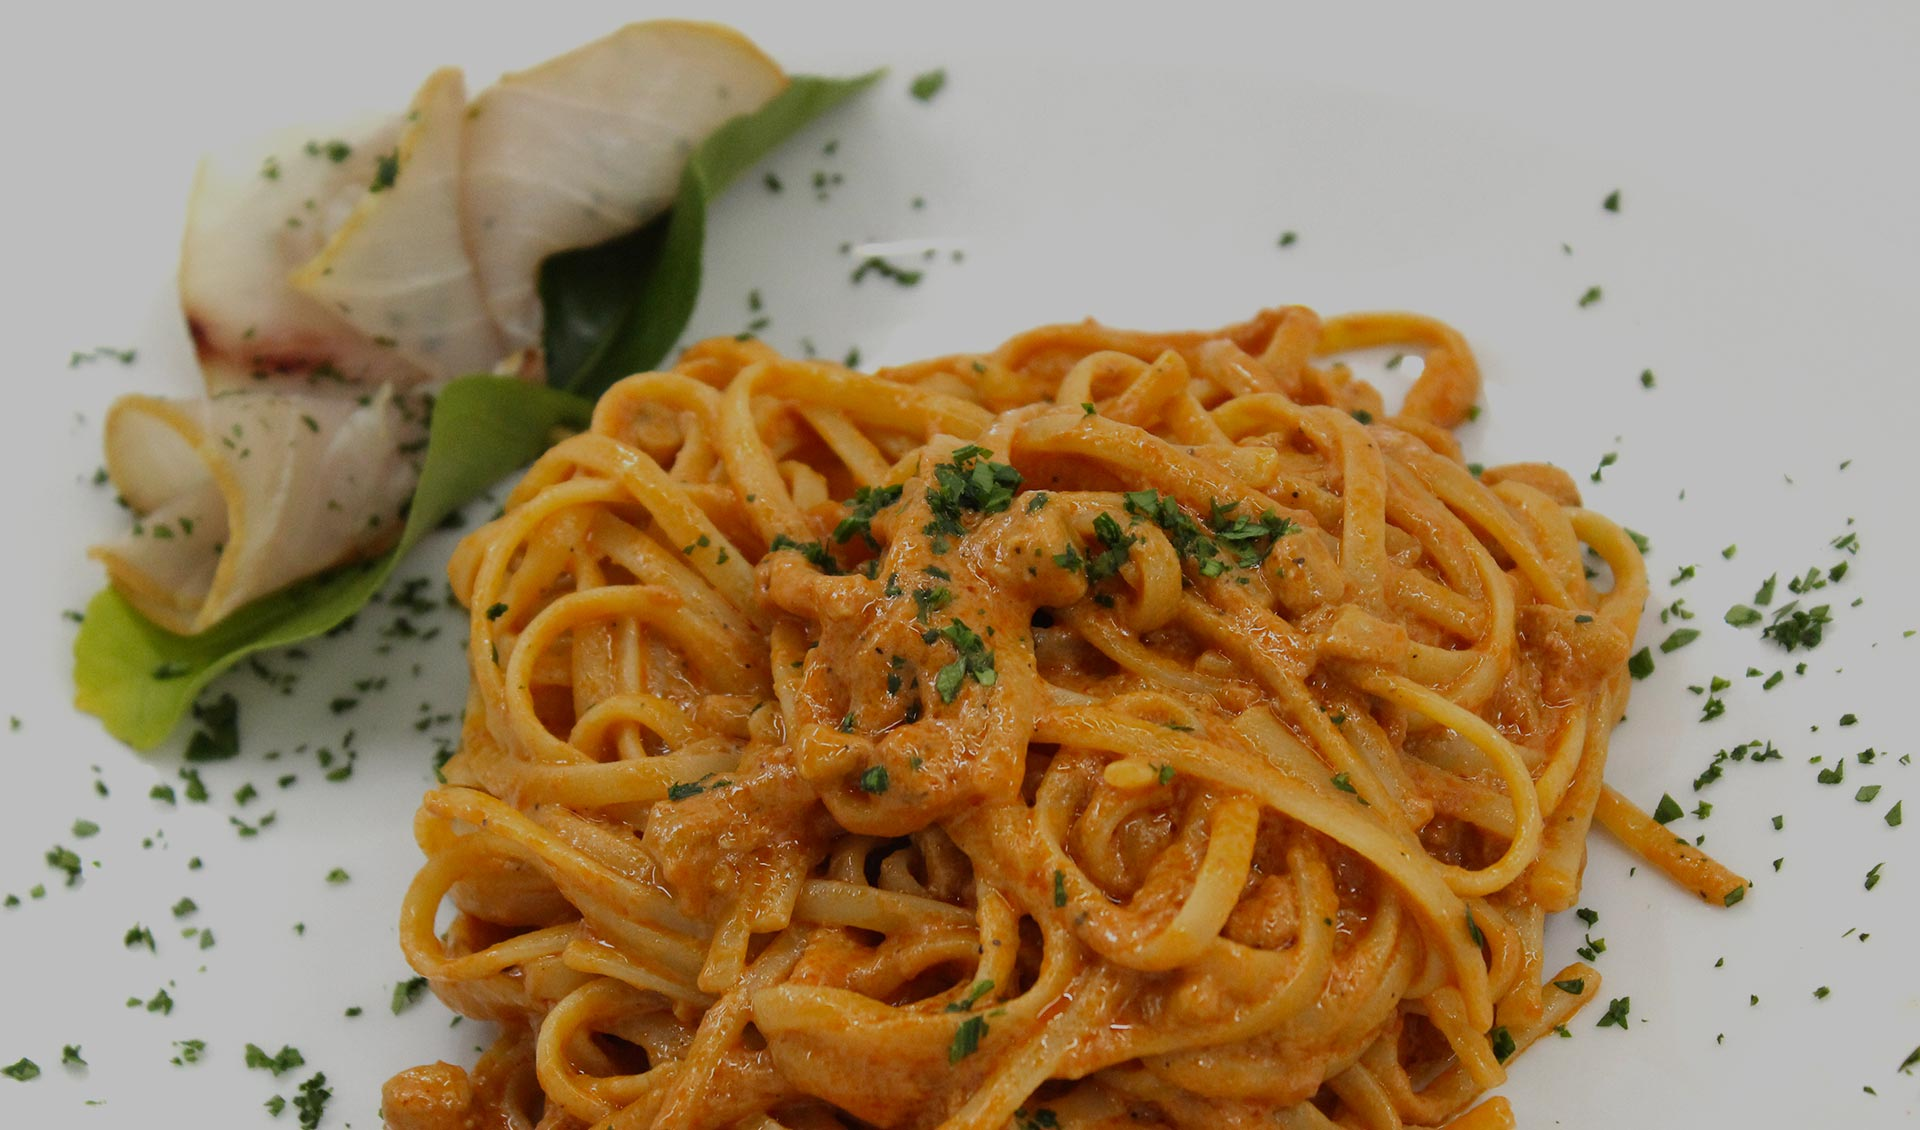 Linguine al Frago